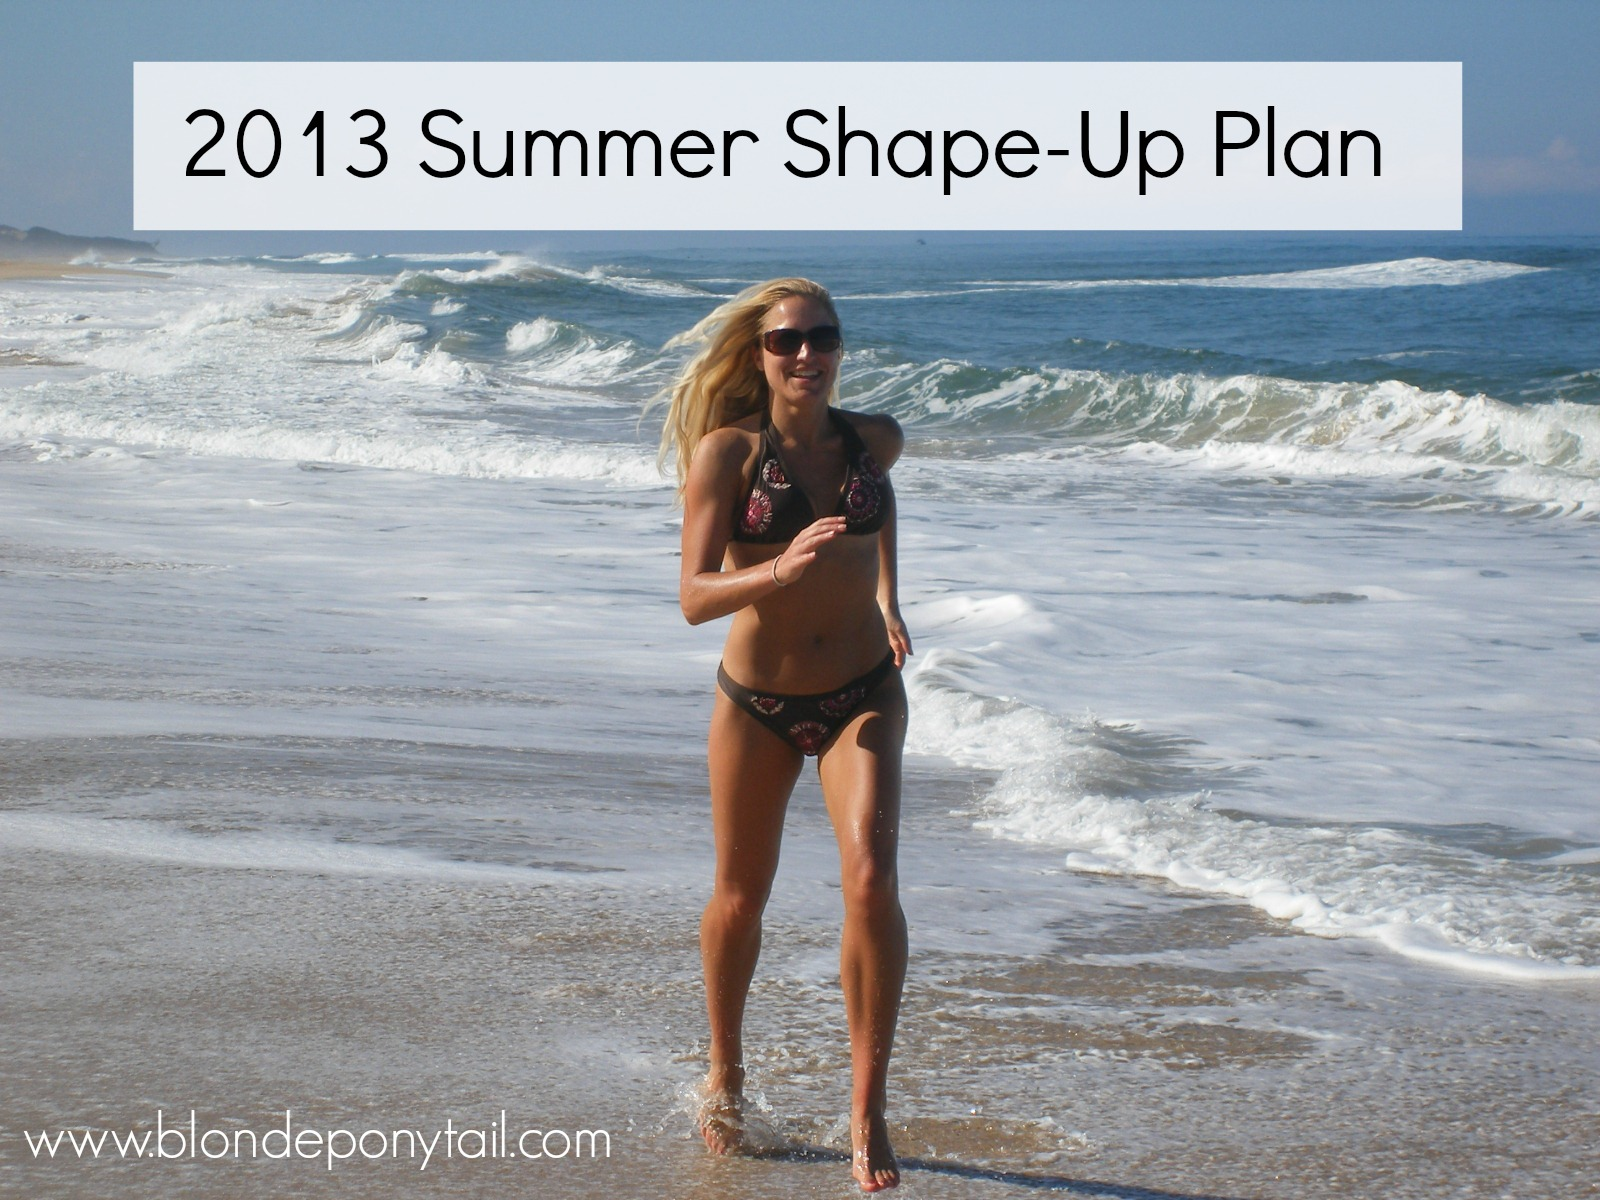 Summer Shape-Up Plan